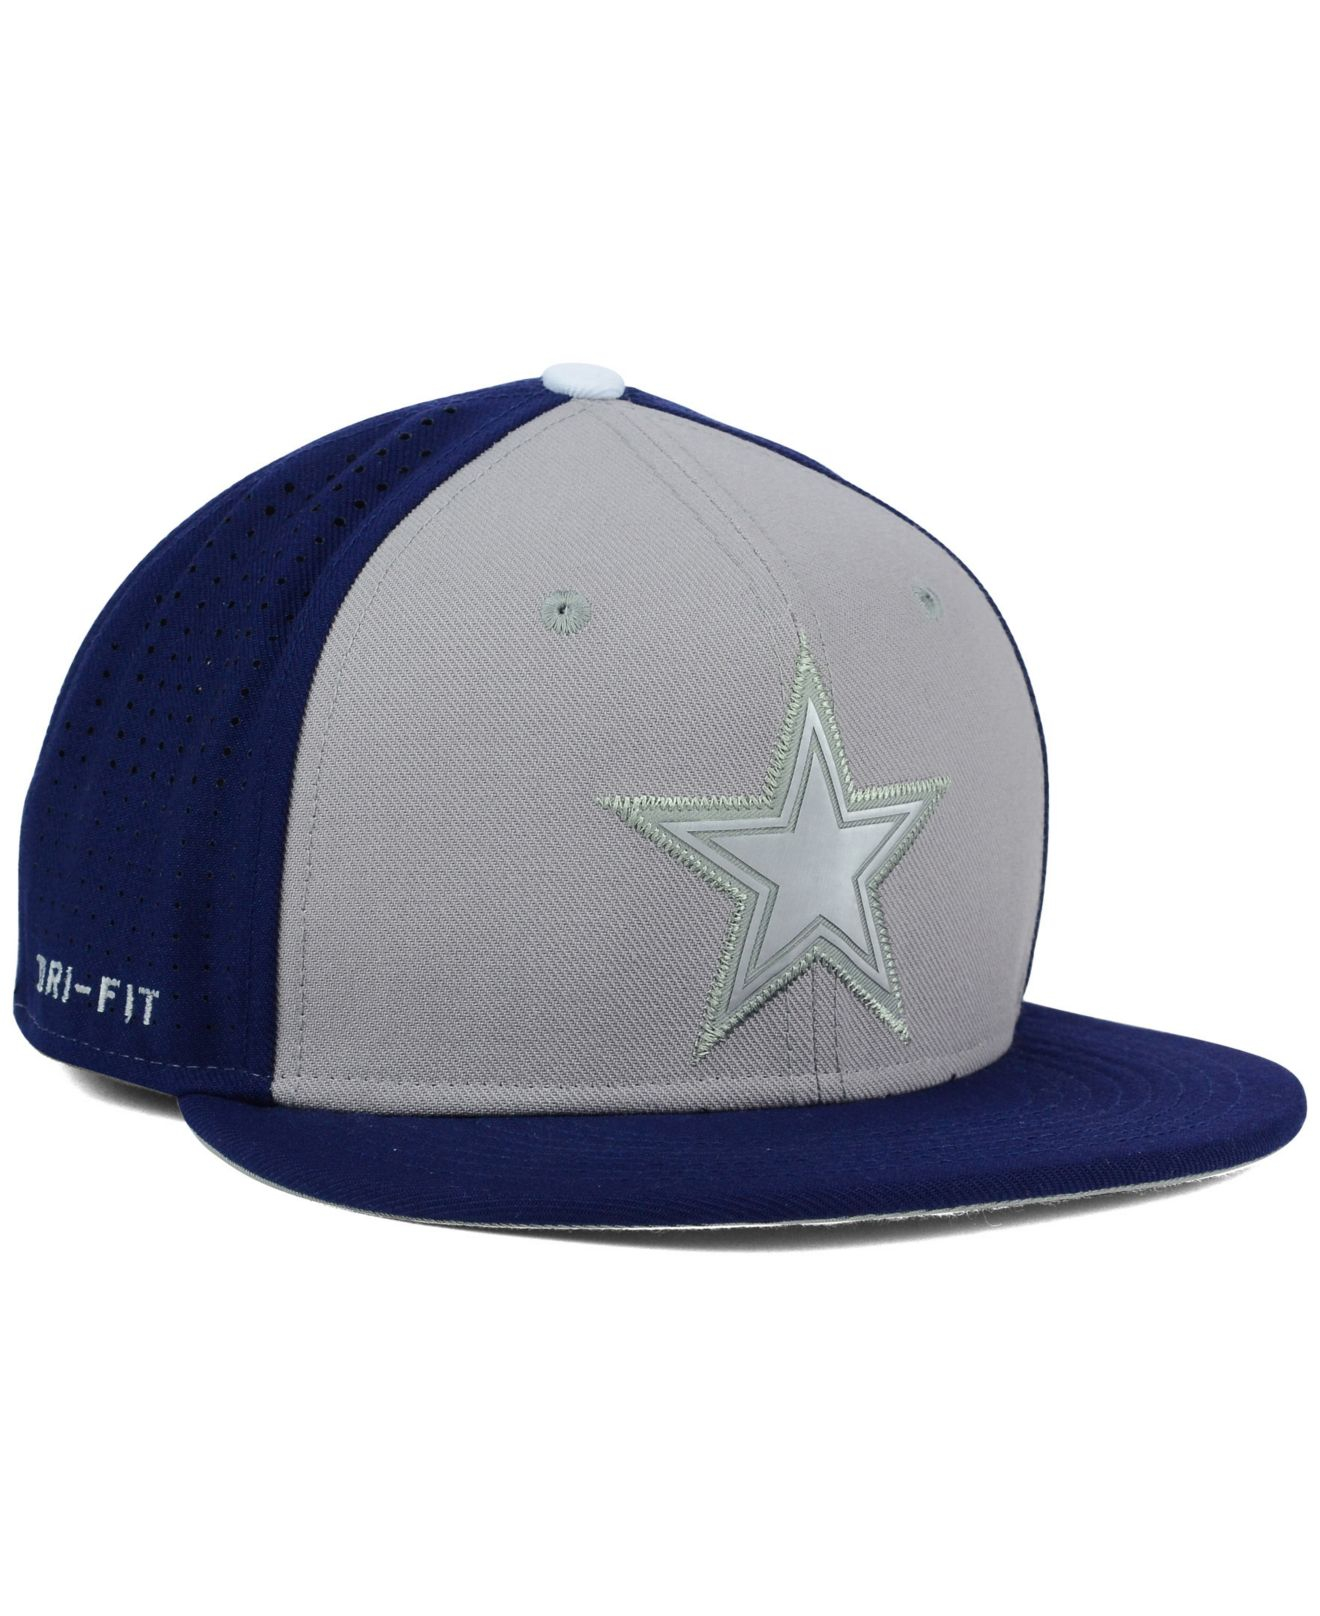 ... adjustable hat gray navy e9560 ccd6b  new zealand lyst nike dallas  cowboys true vapor fitted cap in gray for men dd942 48c02 8101c84c786b